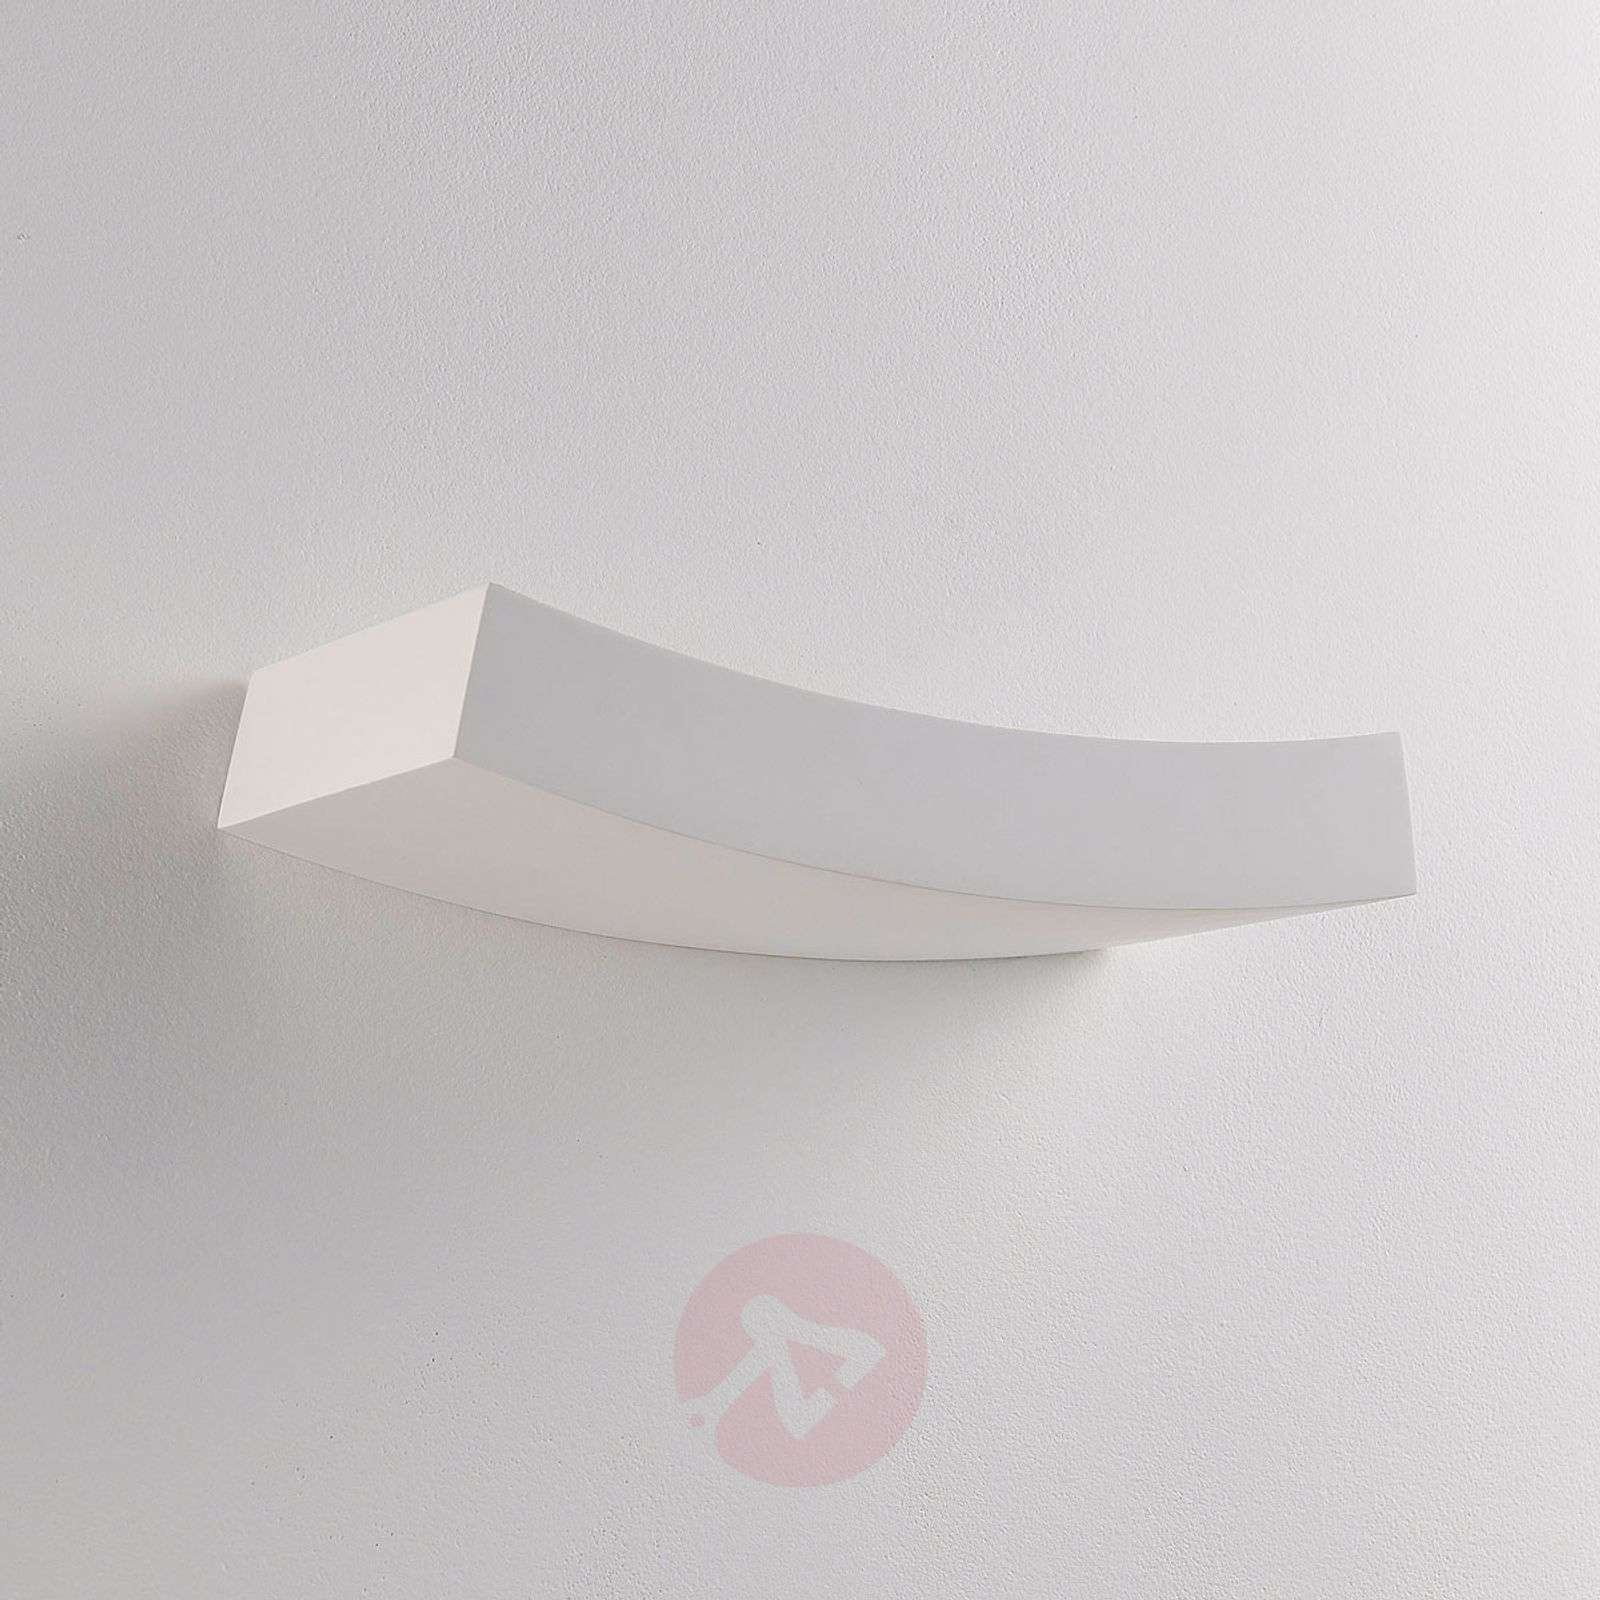 Plaster LED wall uplighter Tiara, G9 bulb dimmable-9621318-011